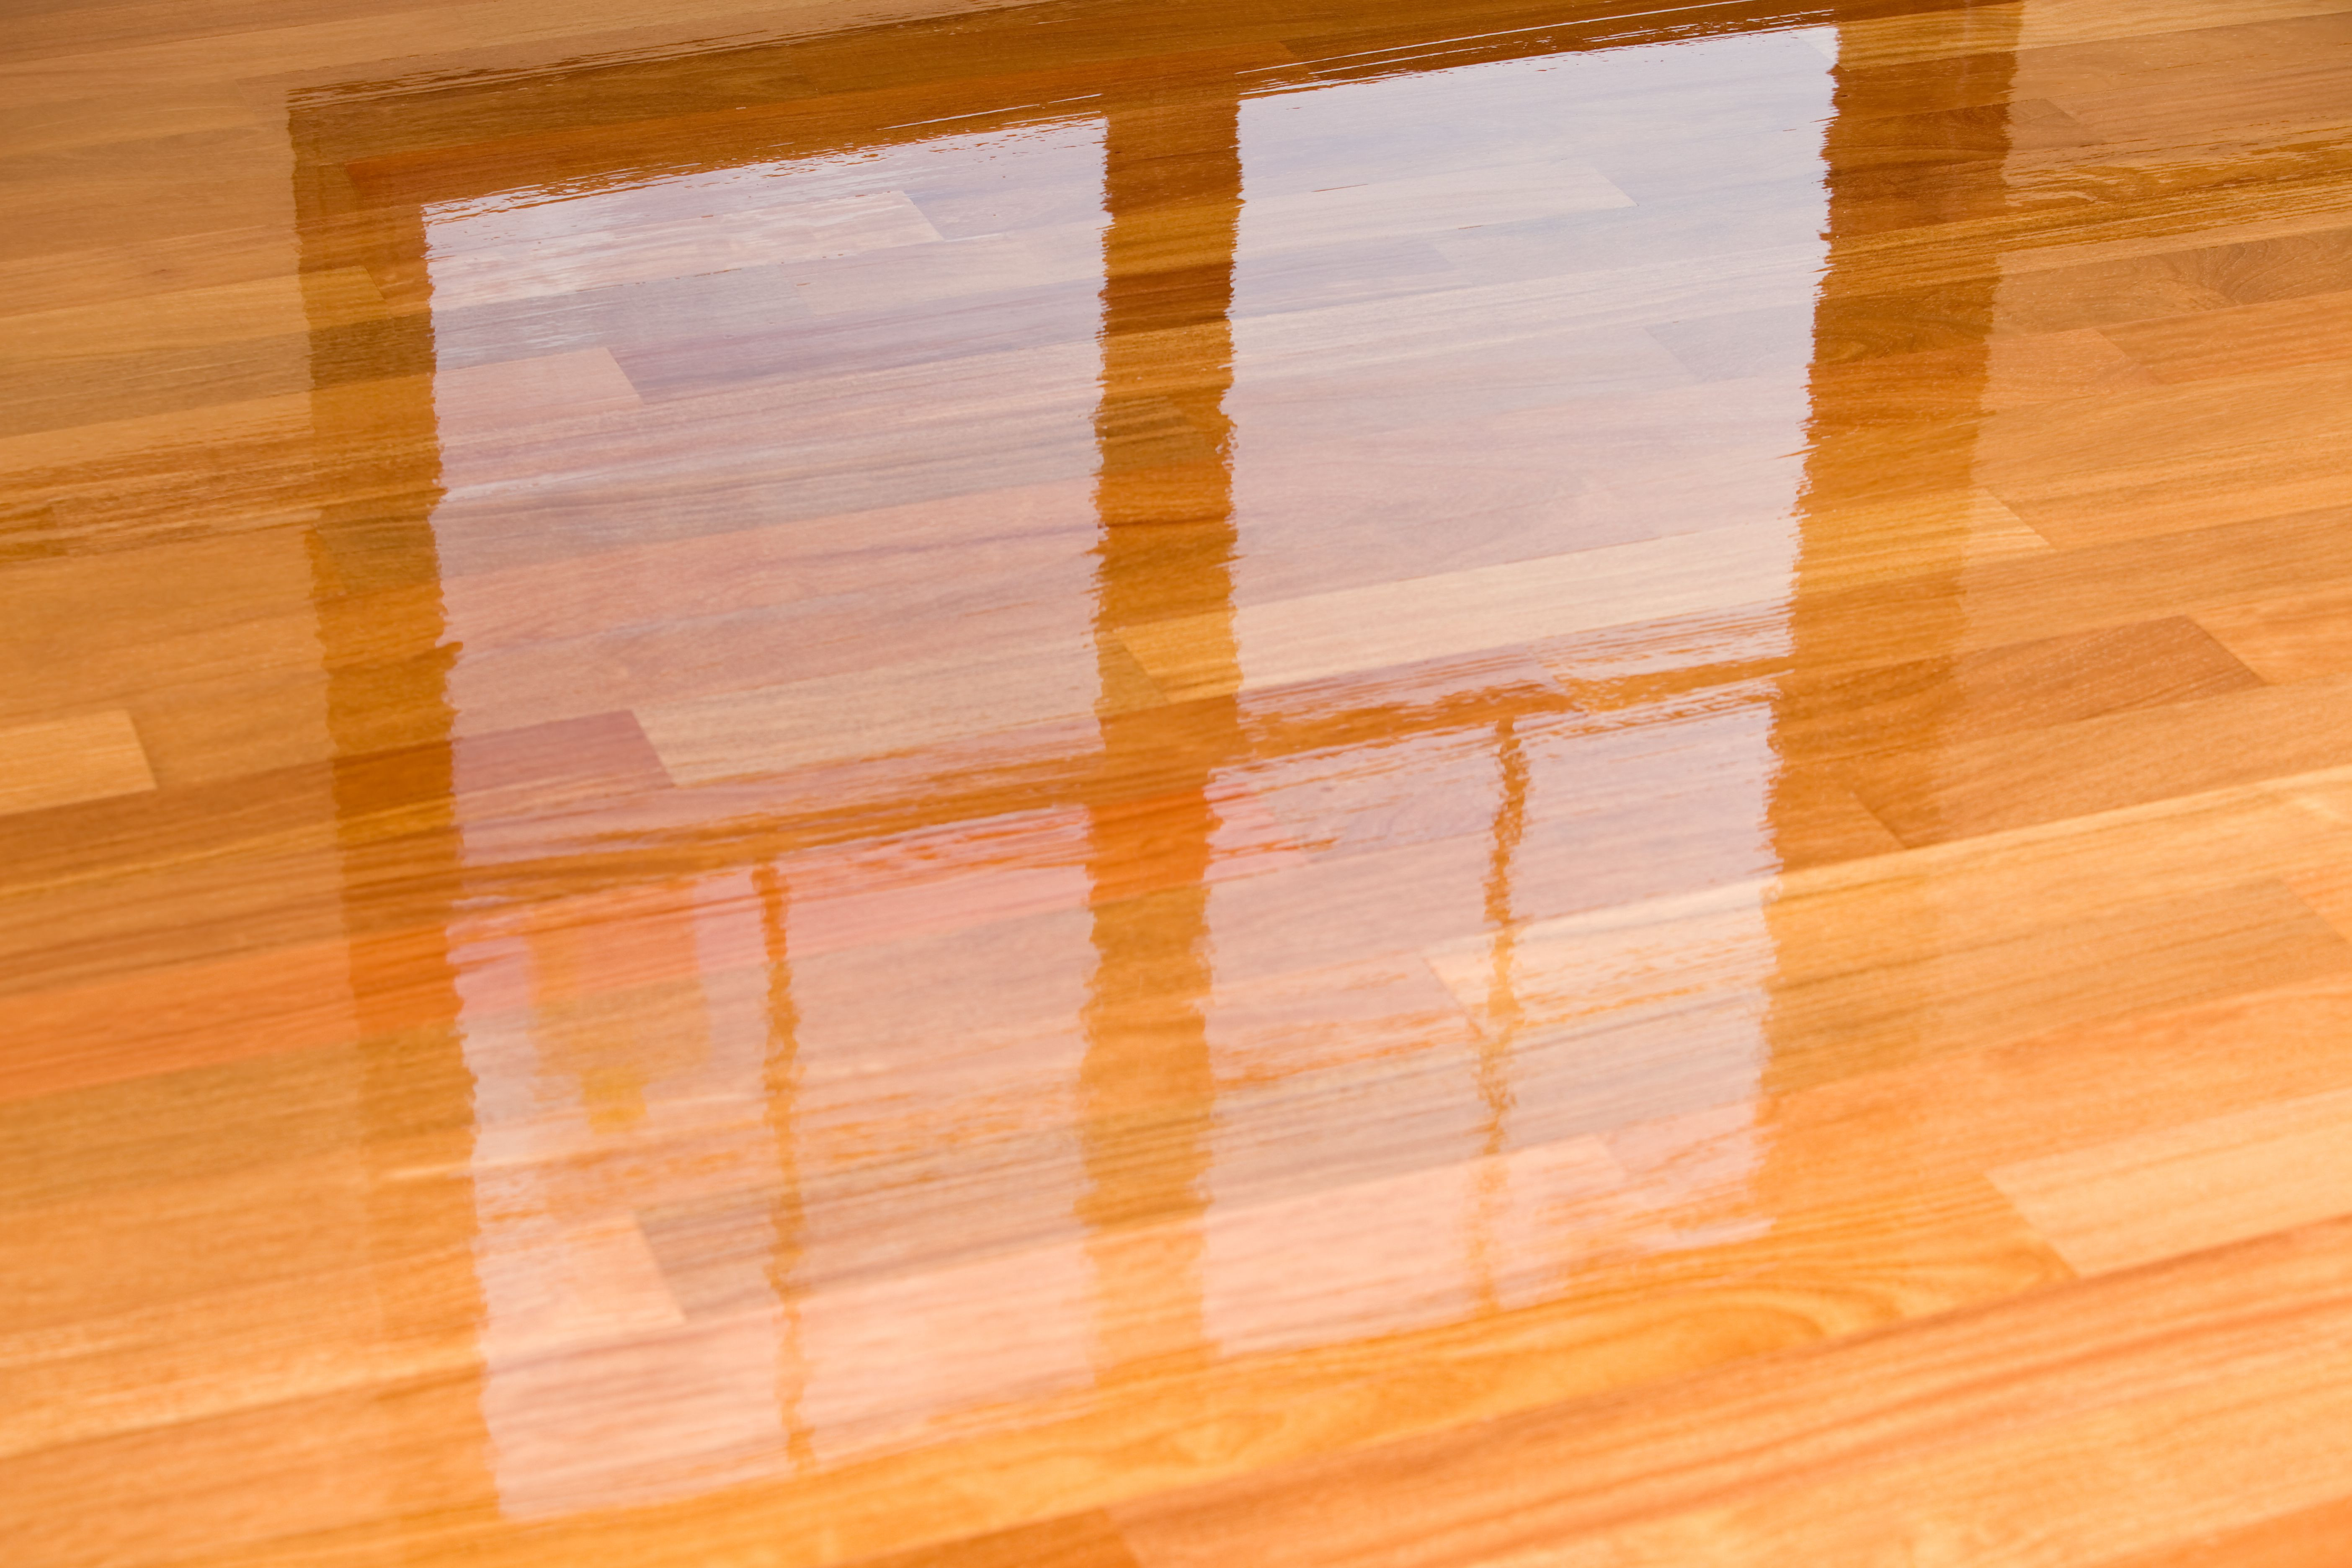 buy hardwood flooring online canada of guide to laminate flooring water and damage repair within wet polyurethane on new hardwood floor with window reflection 183846705 582e34da3df78c6f6a403968